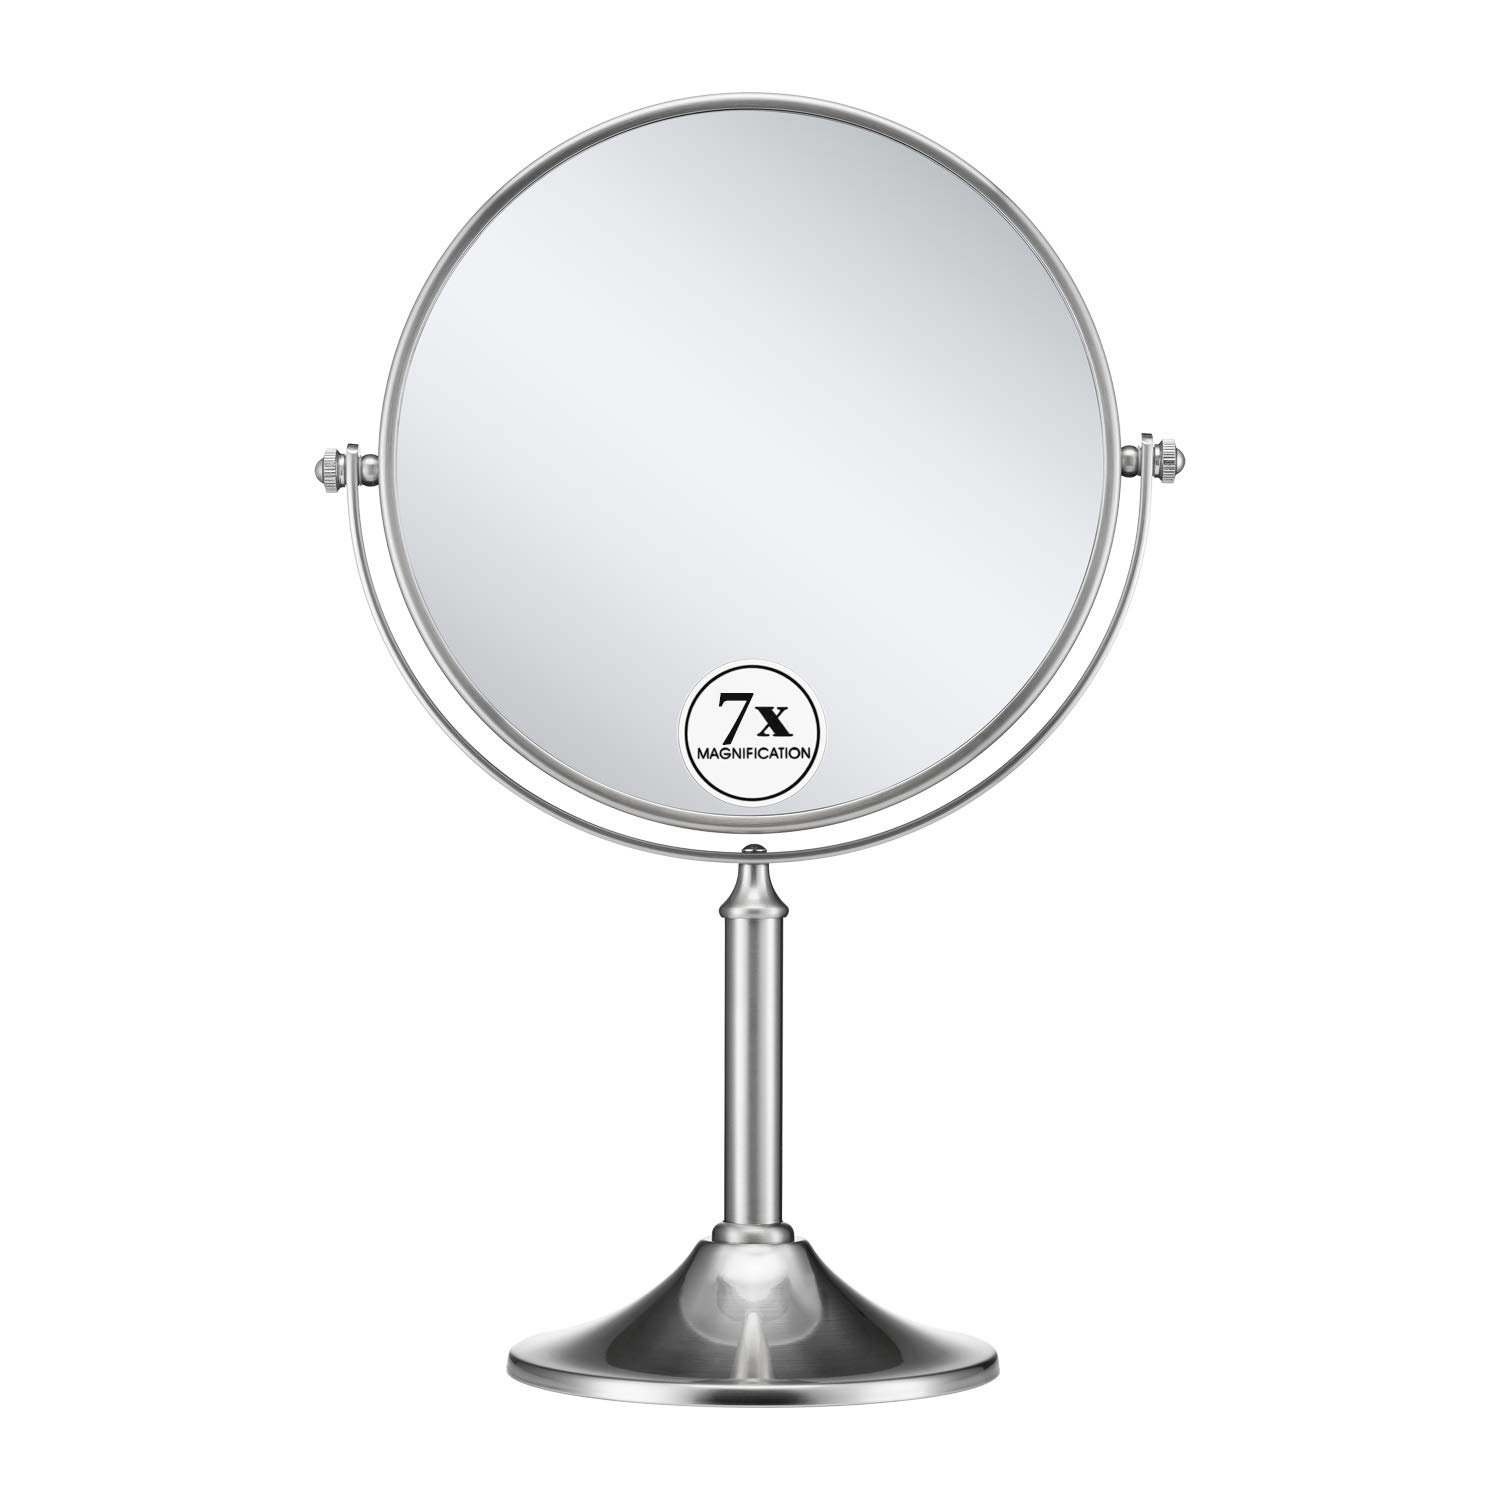 GloRiastar 7X Magnifying Makeup Mirror,8 Inch - 360 Degree Rotation Mirror,Brushed Stainless Steel